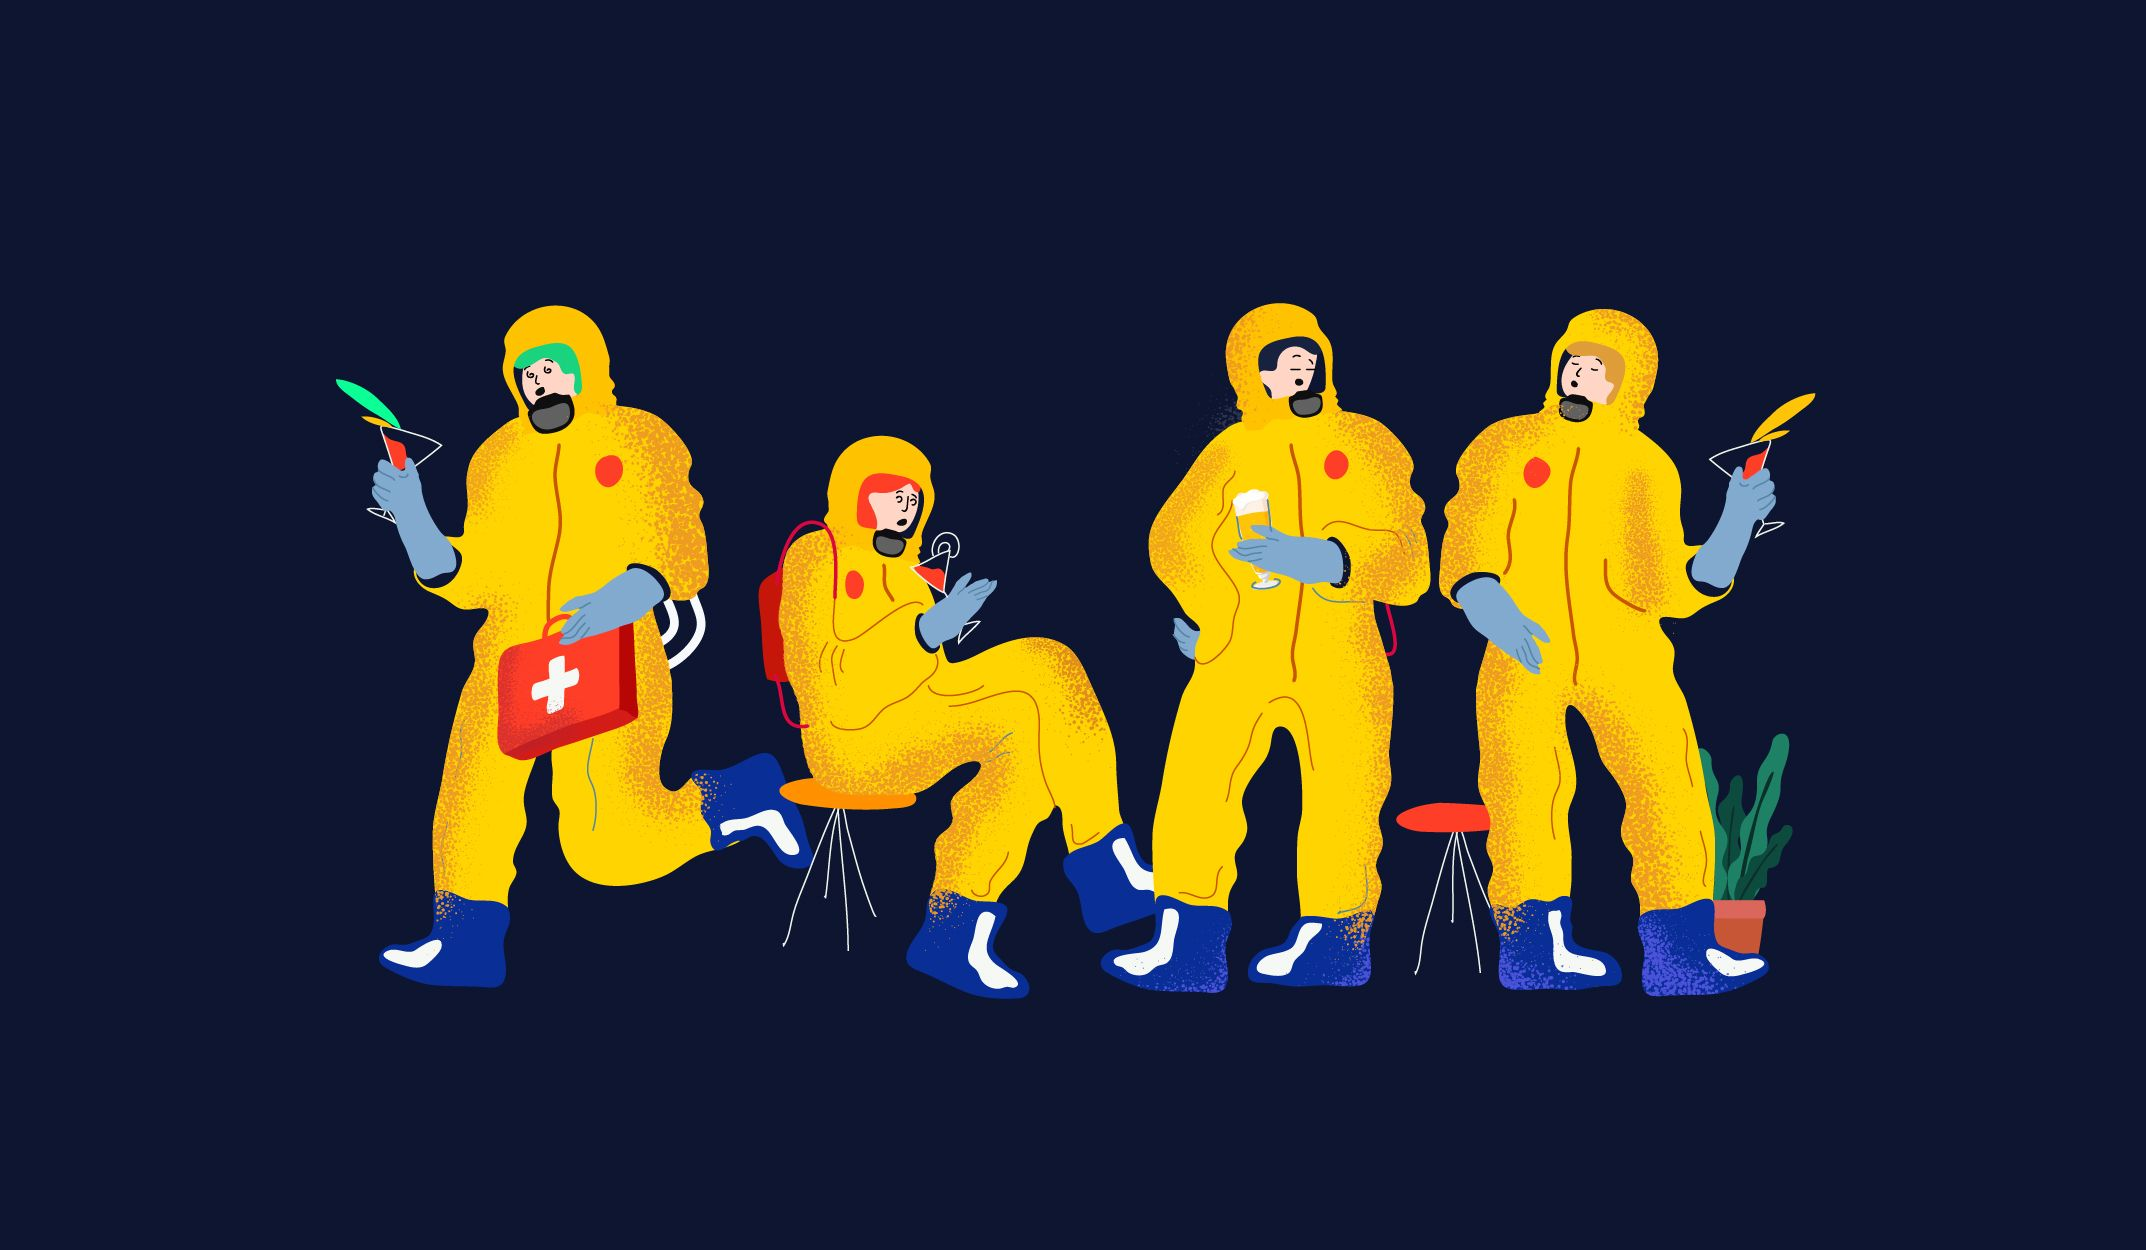 The header image features an illustration of four people in hazmat suits.